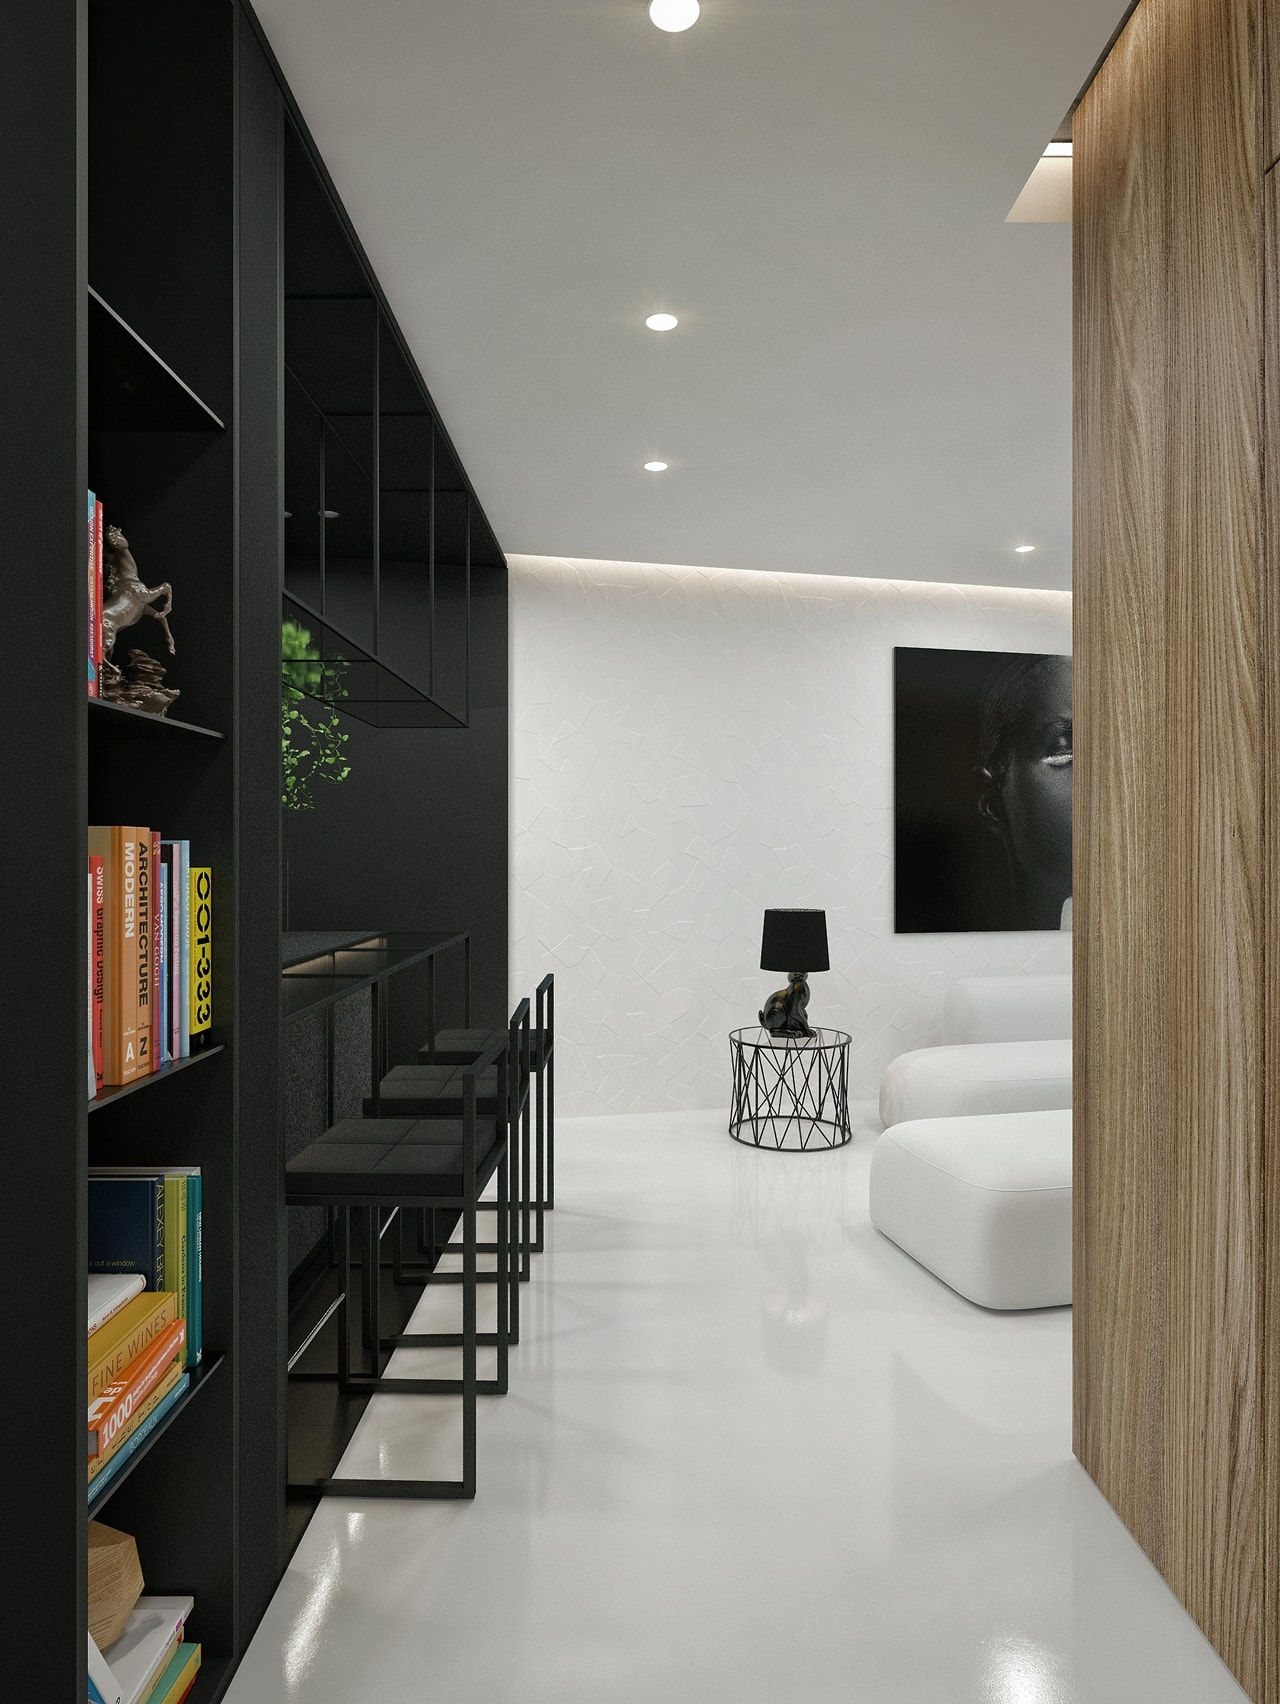 Black and white interior design ideas modern apartment by for Design your apartment layout